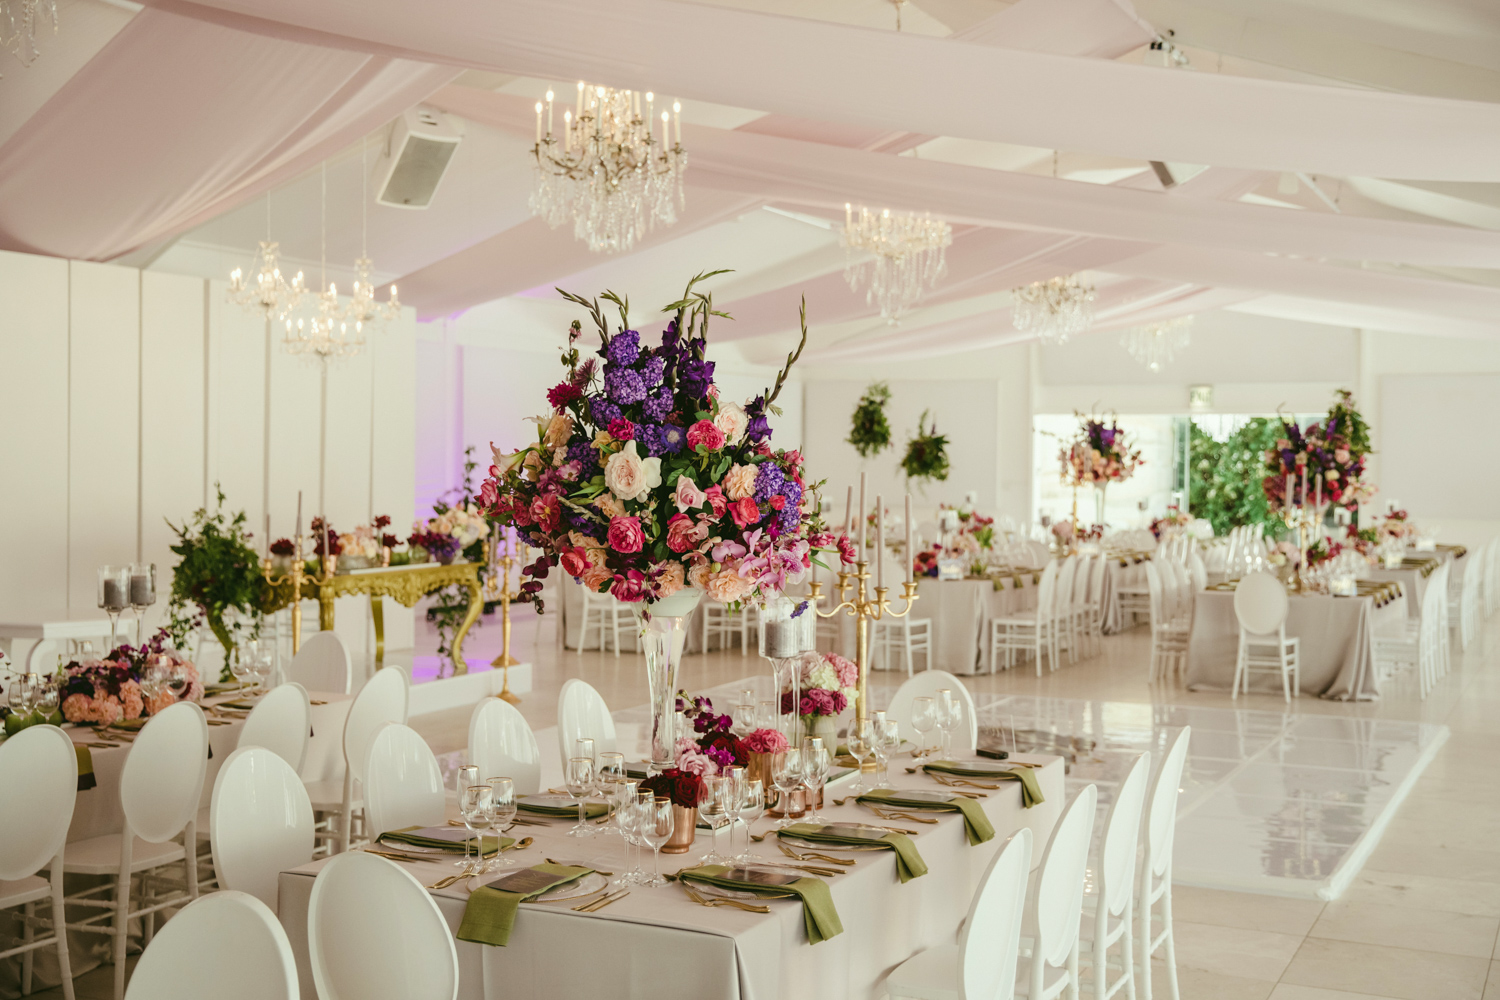 a decor shot in Laurent venue of small hanging greenery and pink floral arraignments on a mirror with gold cutlery and a golden rim under plate and white chairs.